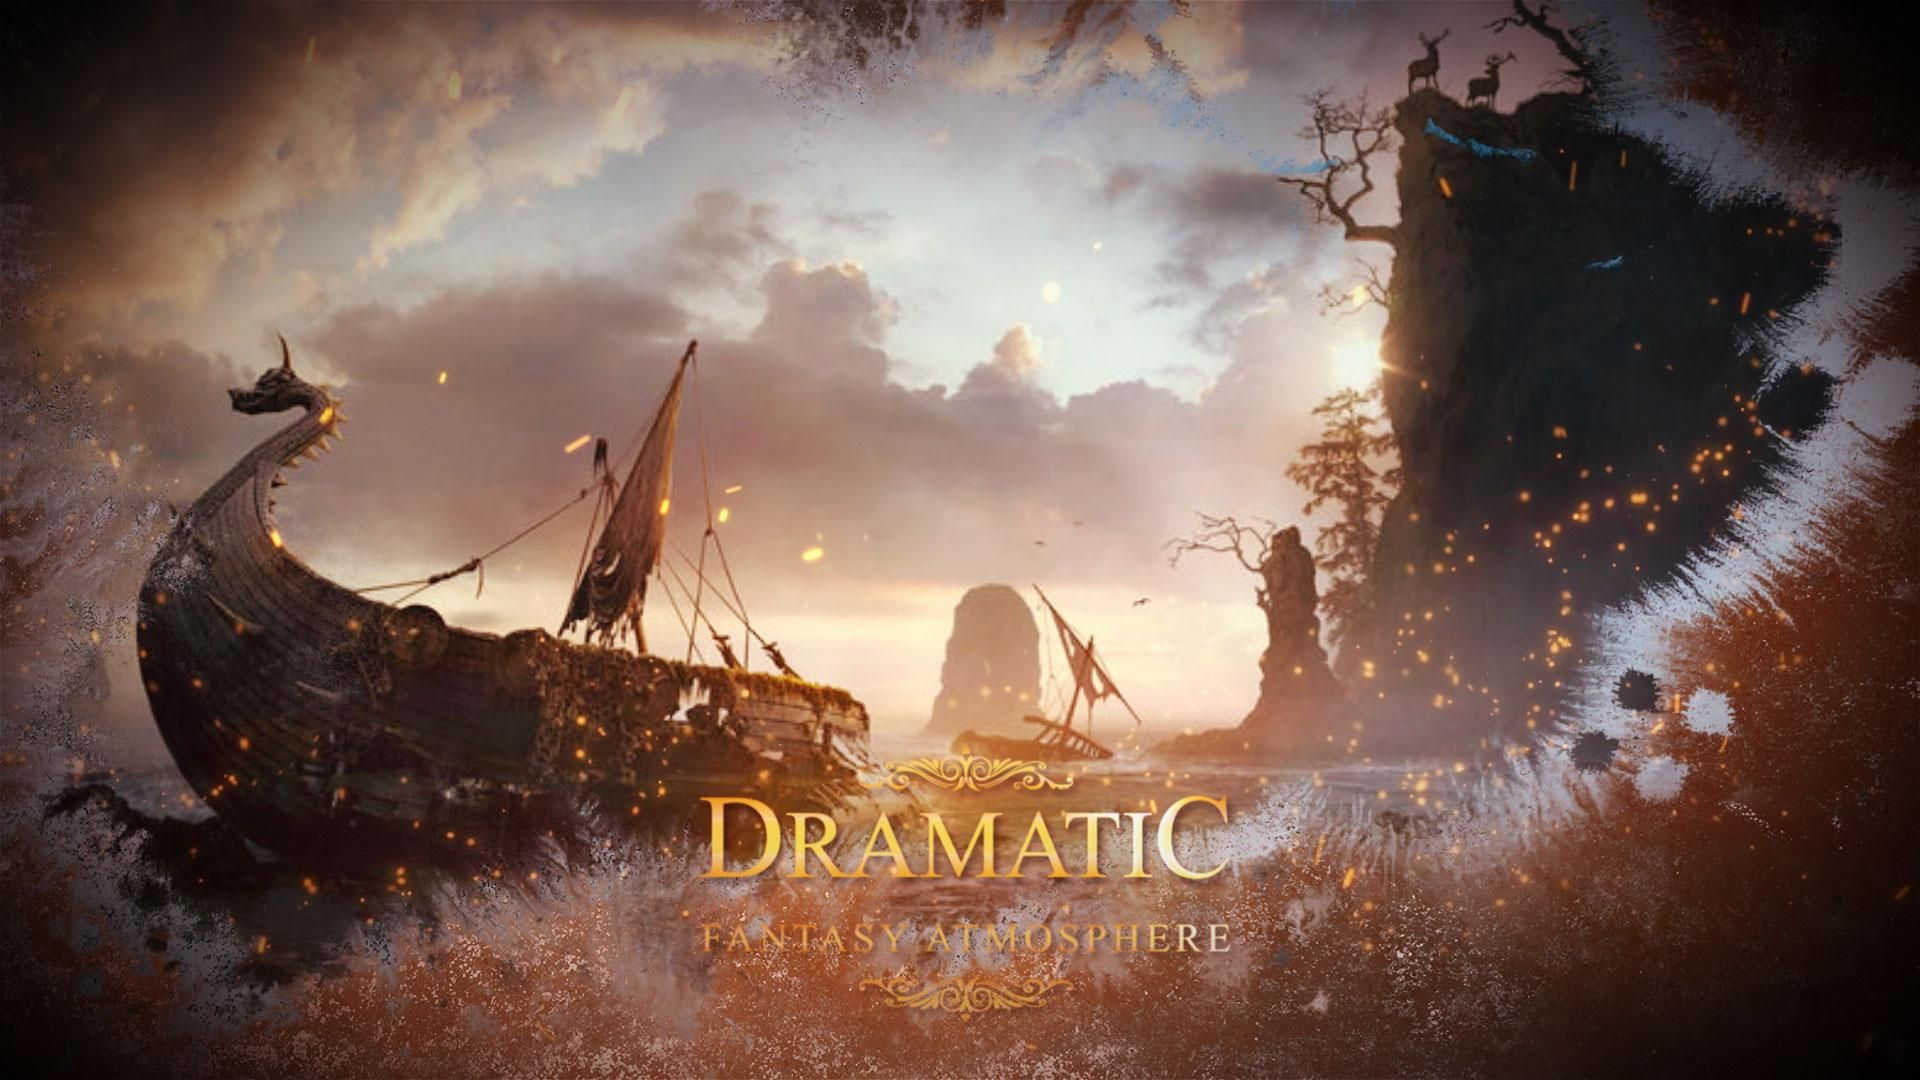 This project perfect for trailers, epic and atmospheric